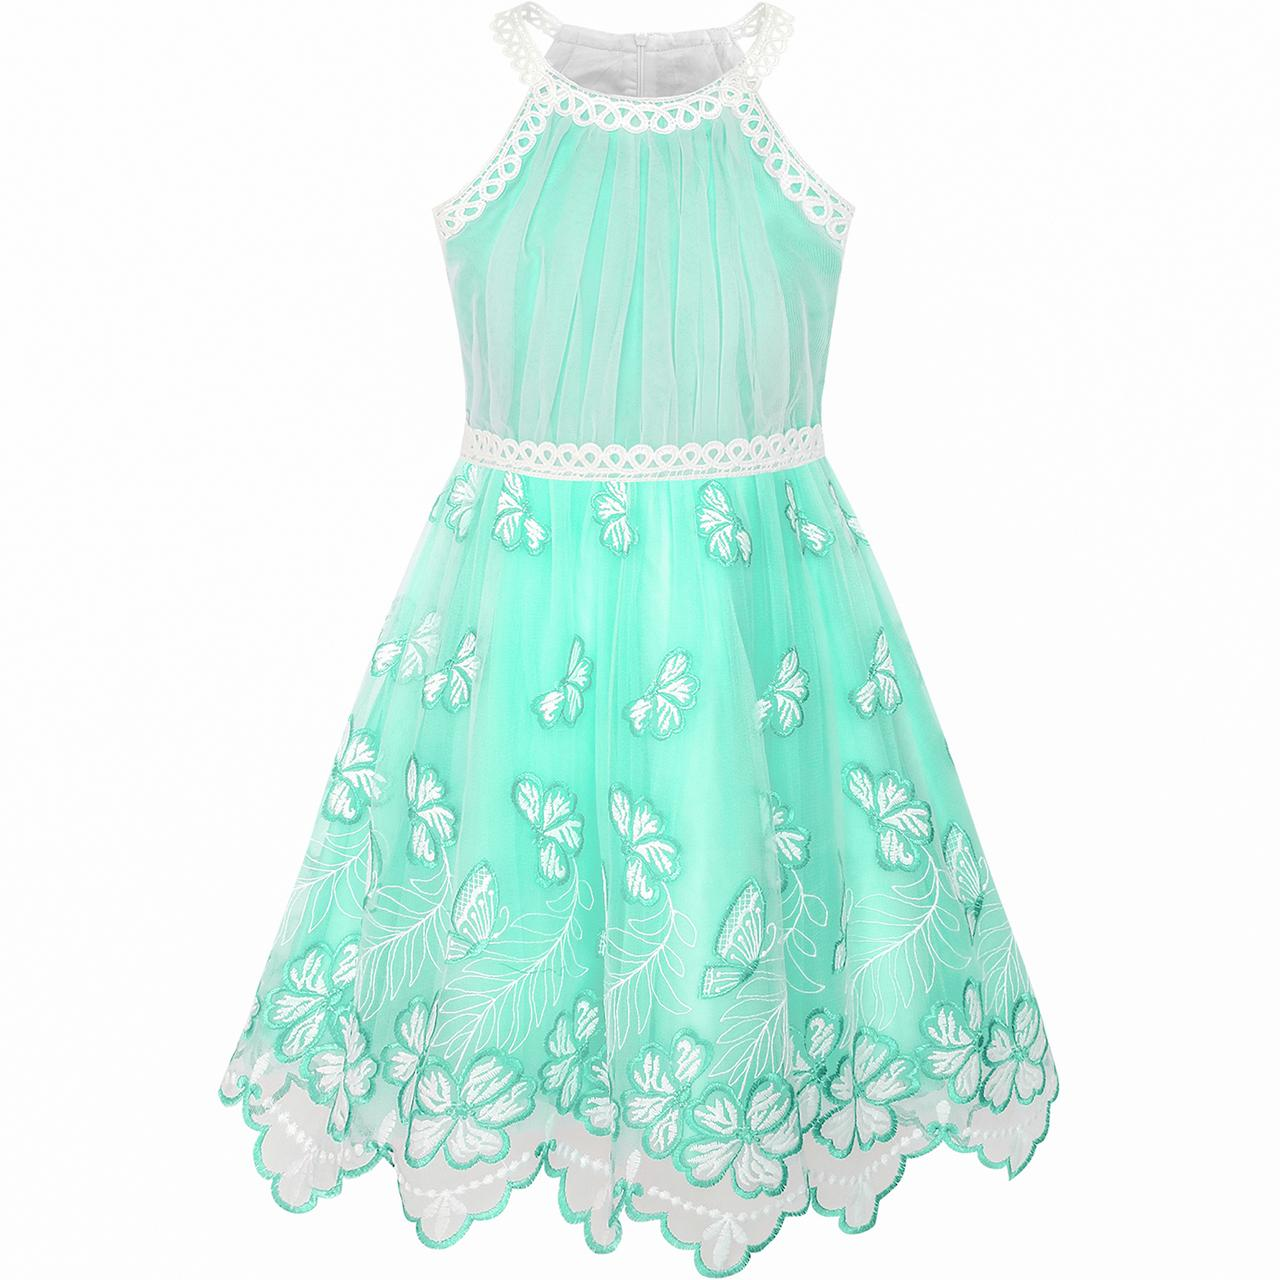 Sunny Fashion Girls Dress Turquoise Butterfly Embroidered Halter Dress Party 2018 Summer Princess Wedding Dresses Size 5-12 sunny fashion girls dress butterfly party birthday sundress 2017 summer princess wedding dresses kids clothes size 5 12 pageant